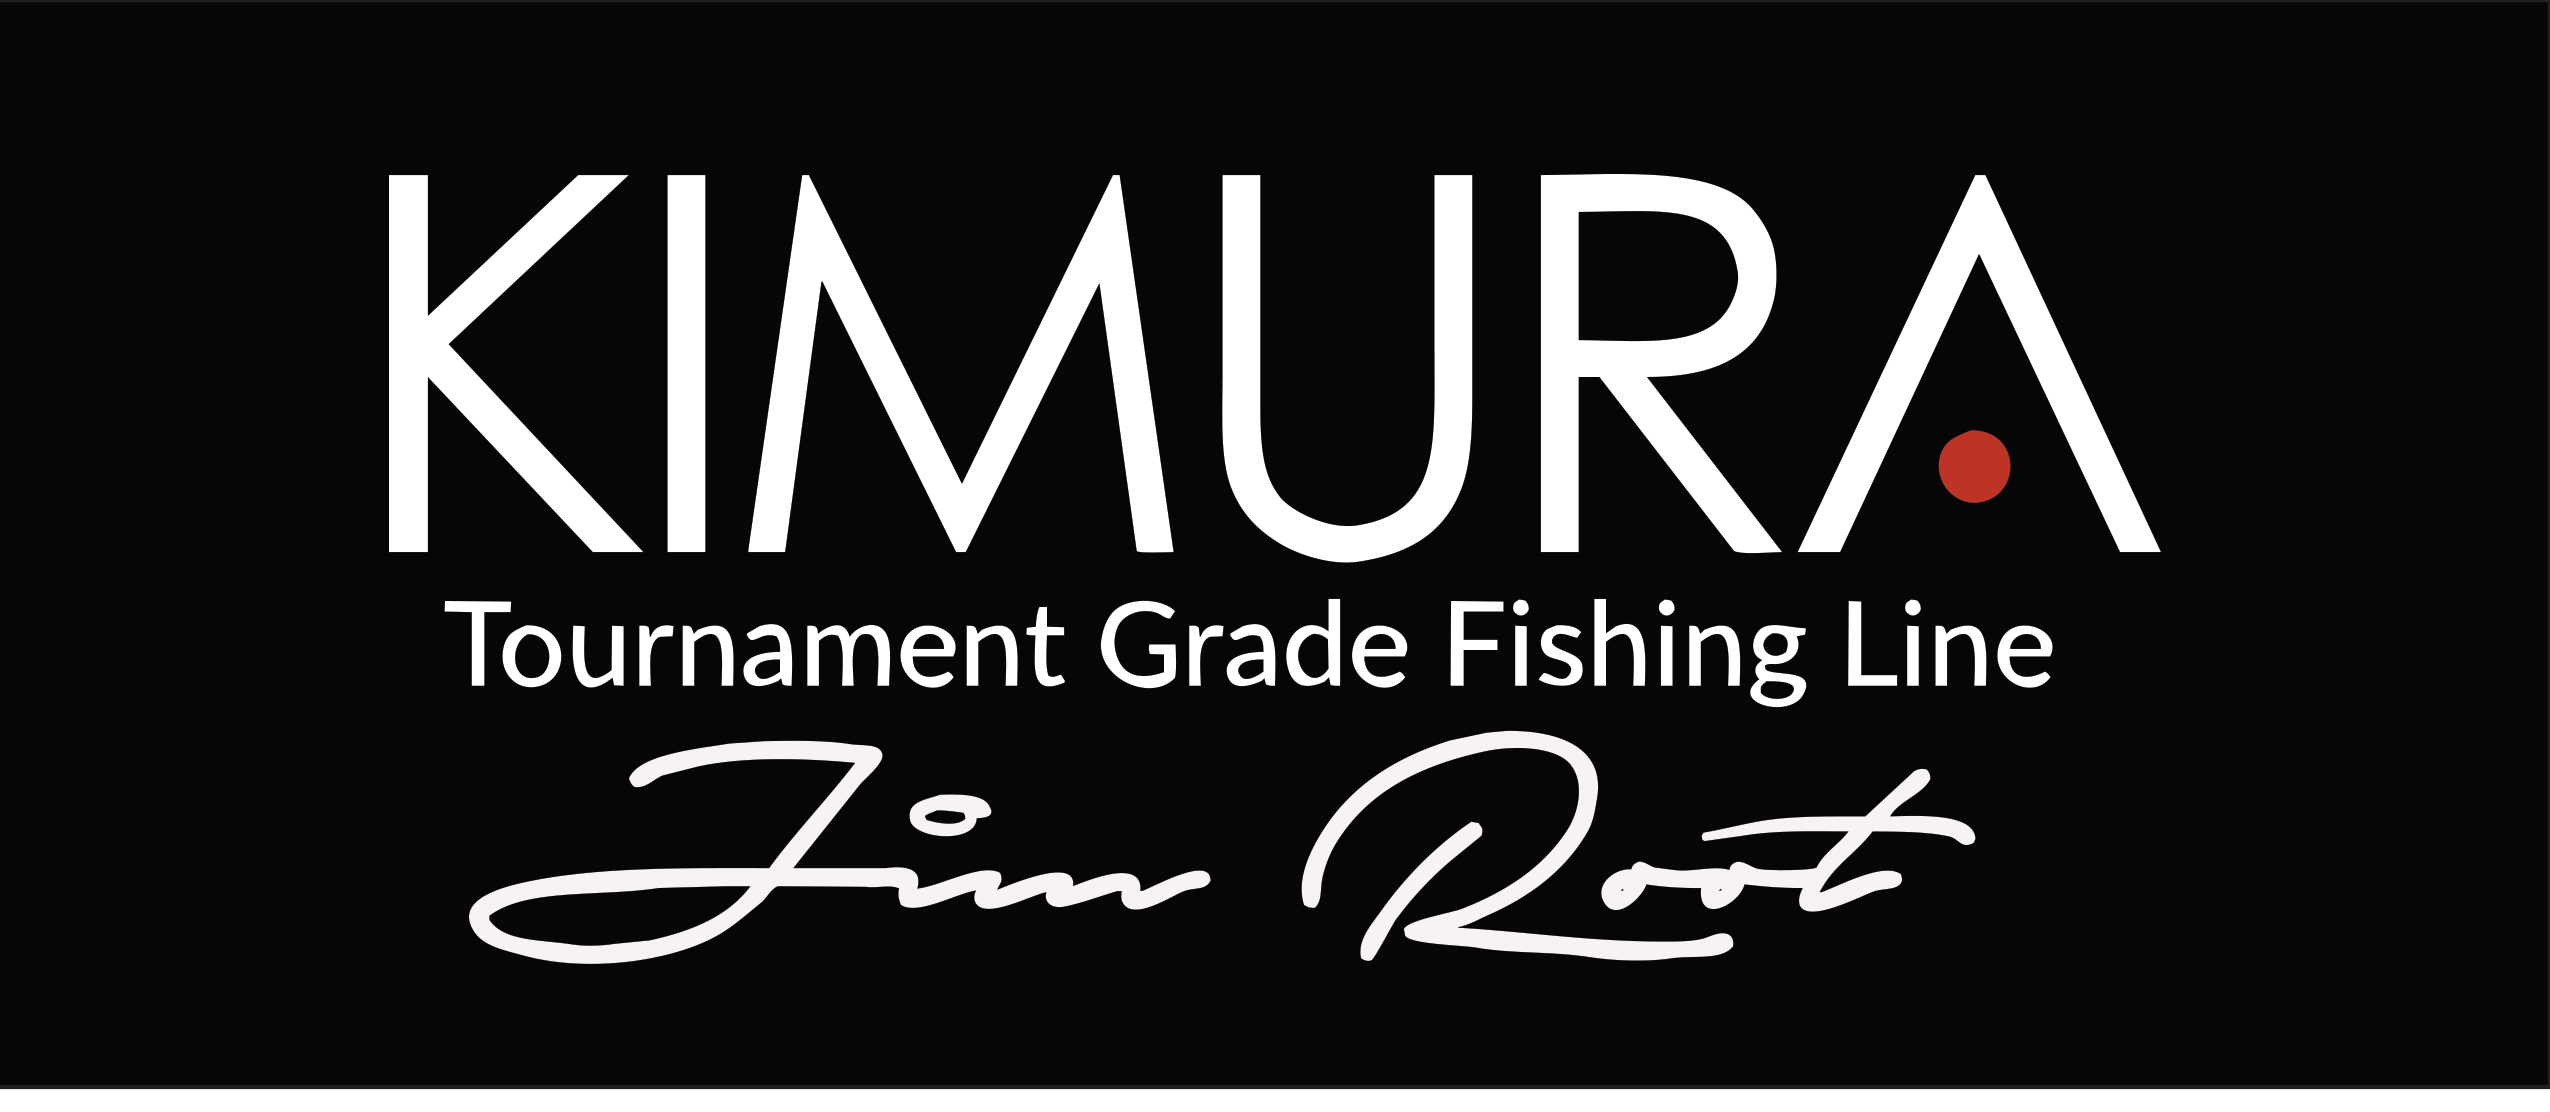 KIMURA Jim Root Fishing Signature Series high performance fishing line.